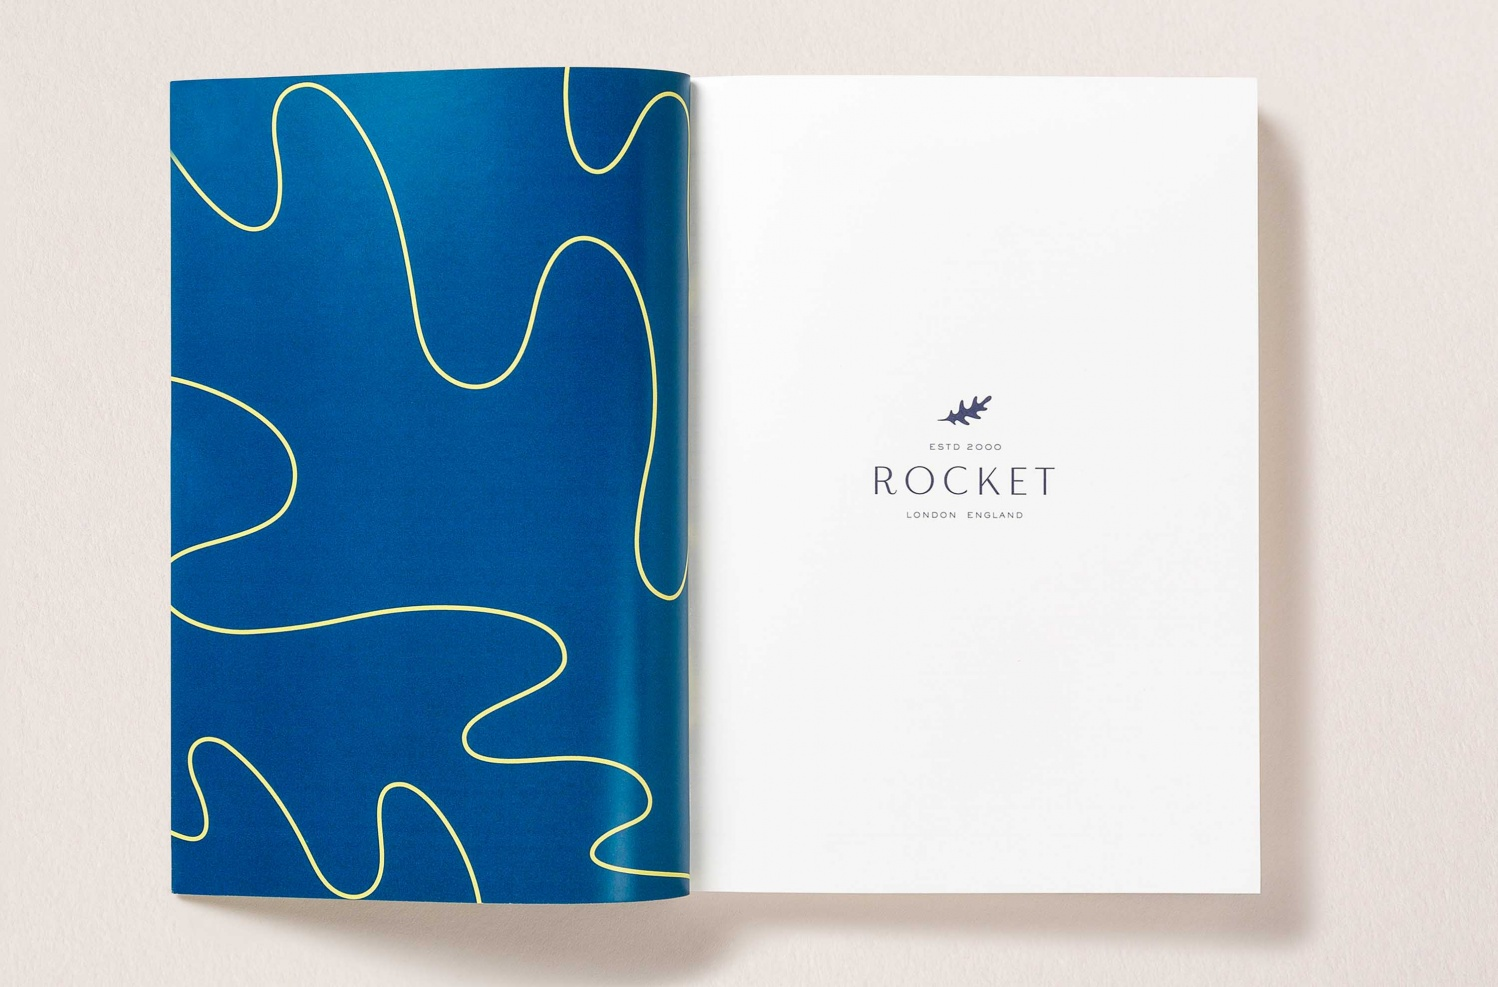 Logo, pattern, stationery and van livery by London-based studio Here Design for UK catering business Rocket